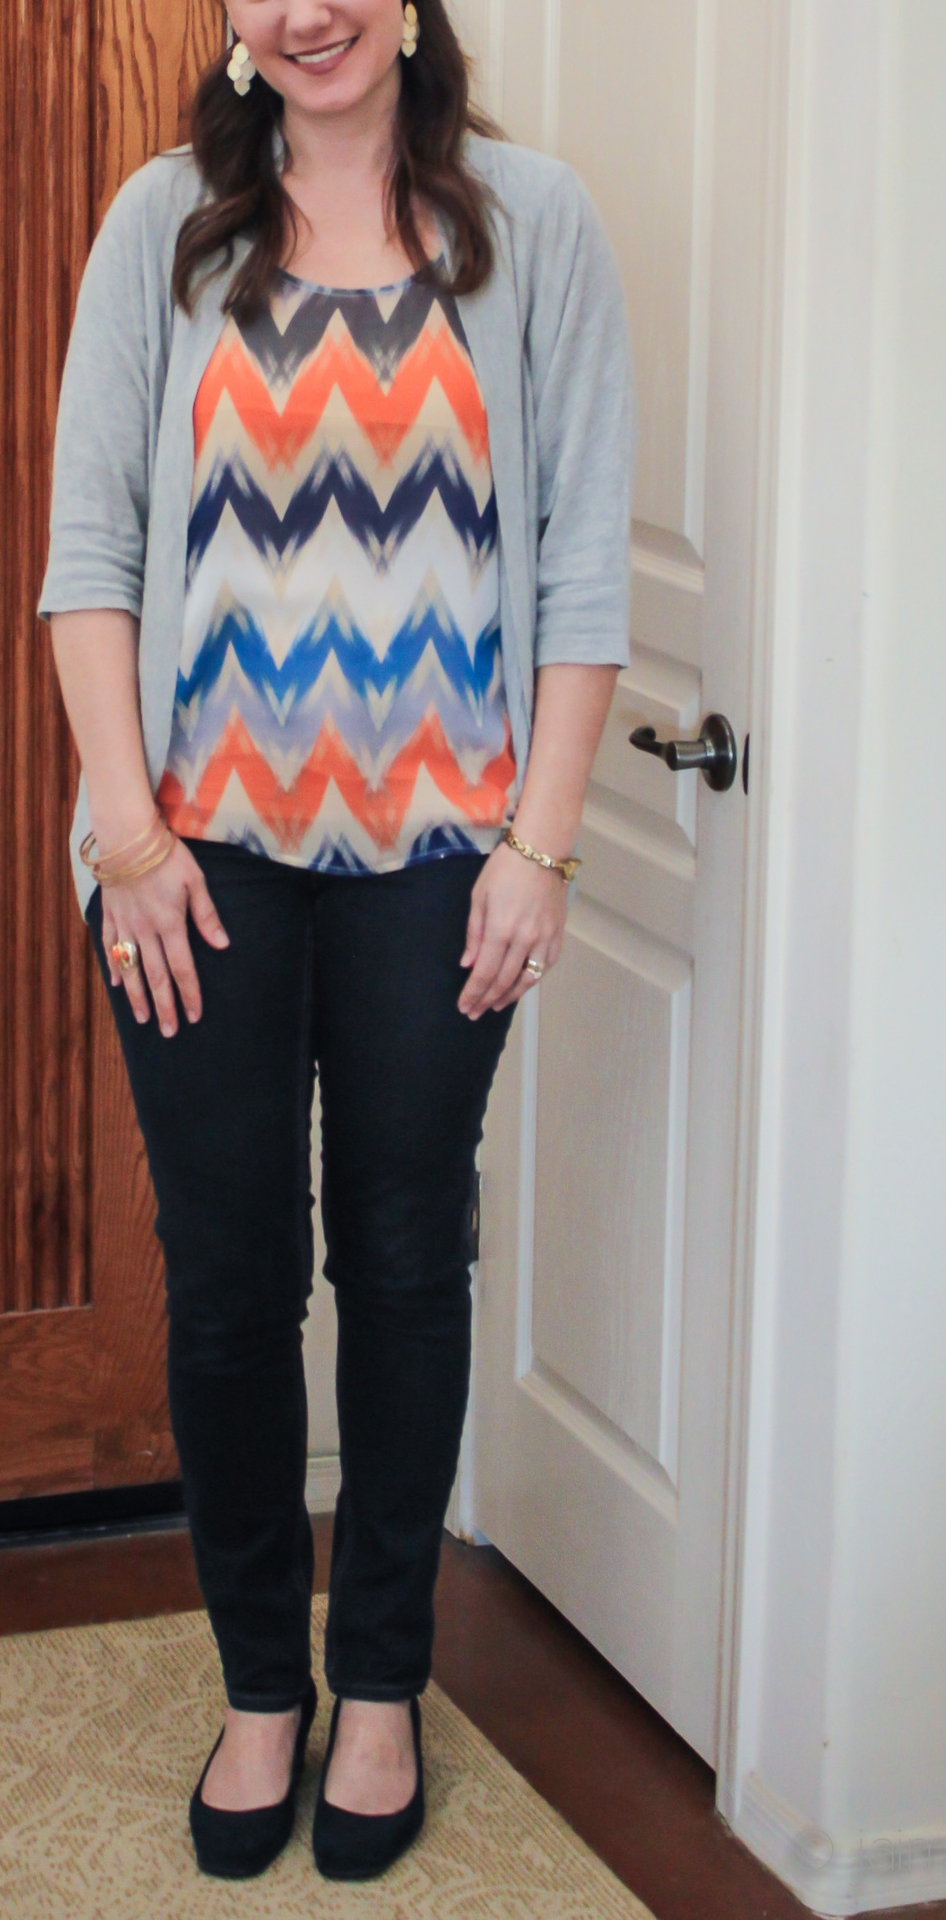 stitch fix review-3610.jpg